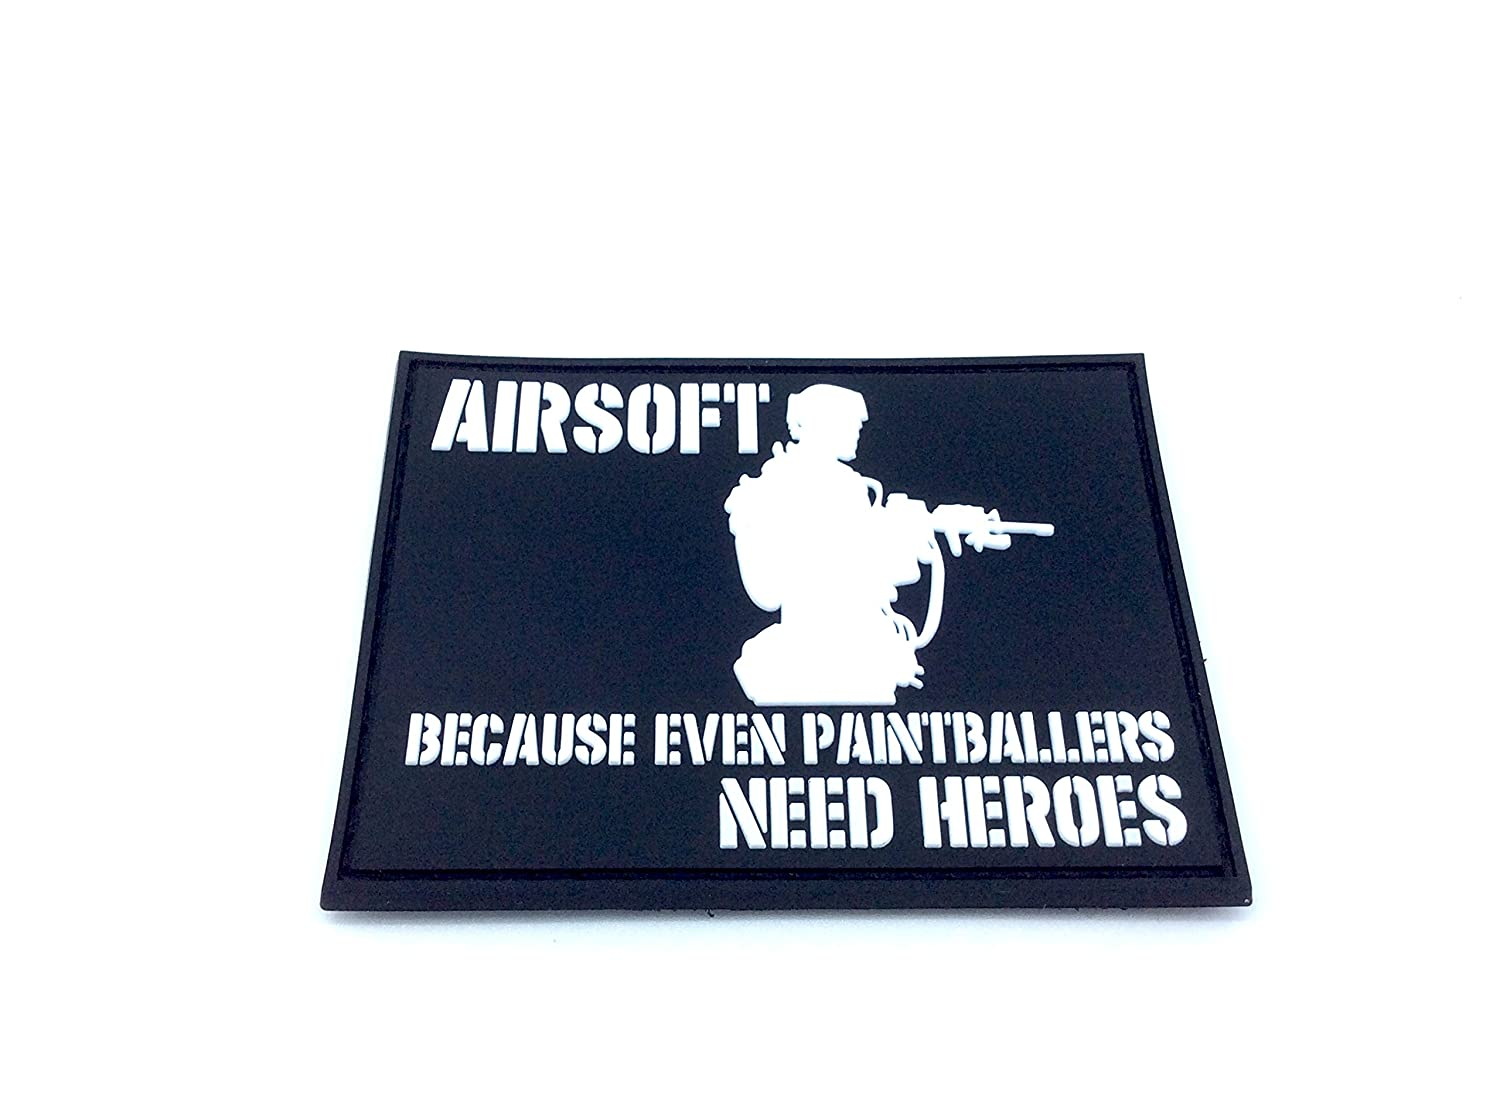 Airsoft Because Even Paintballers Need Heroes Blanco Velcro PVC Parche Patch Nation